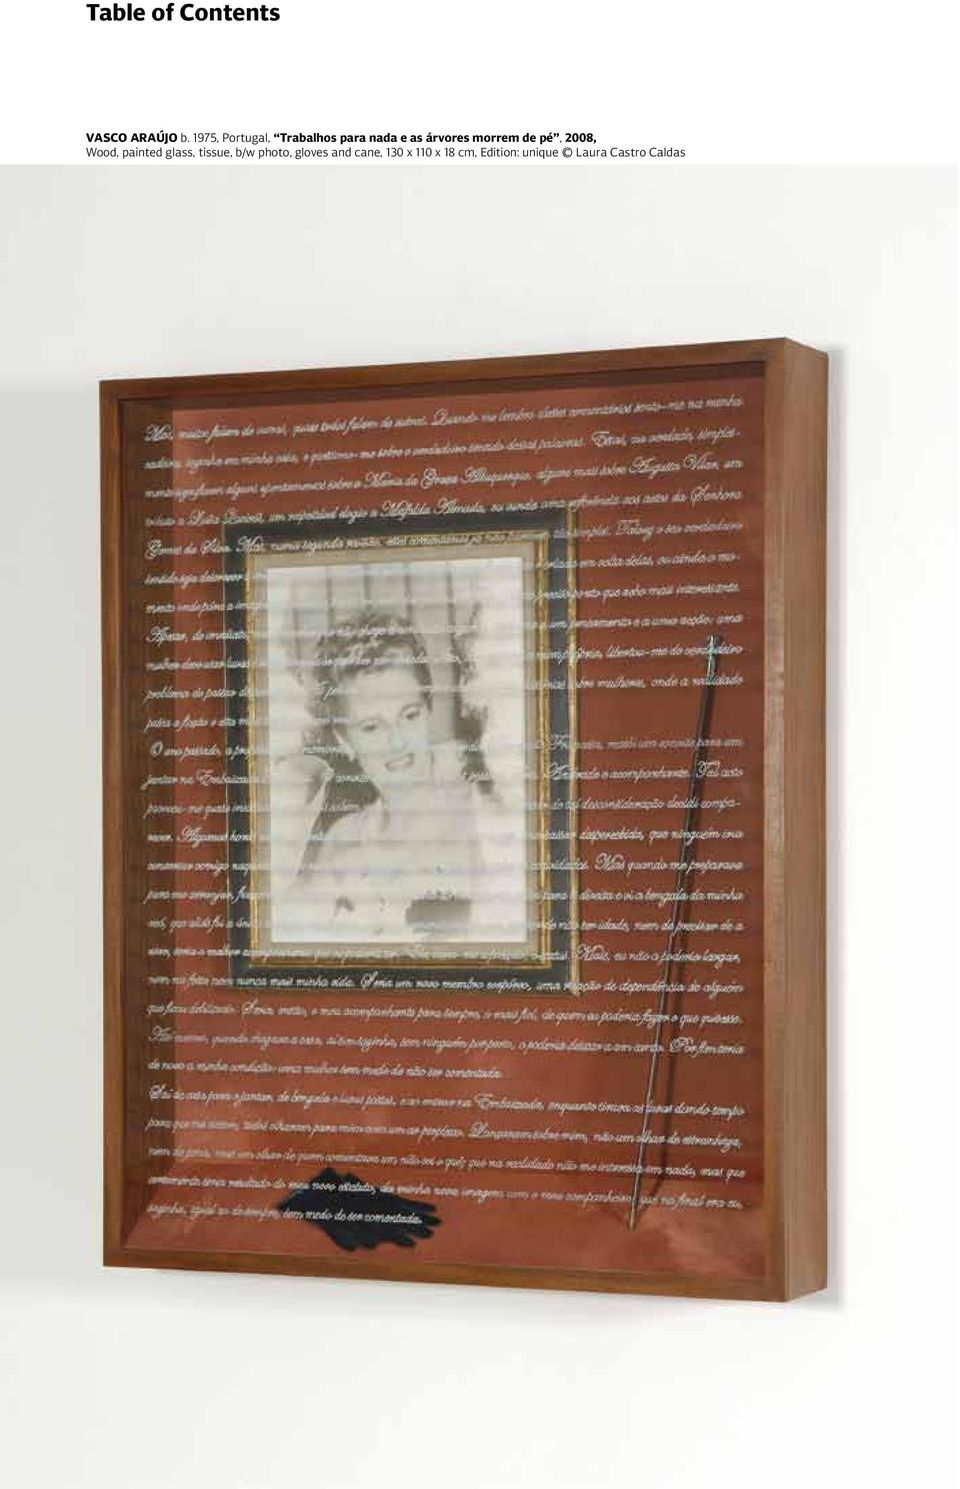 pé, 2008, Wood, painted glass, tissue, b/w photo, gloves and